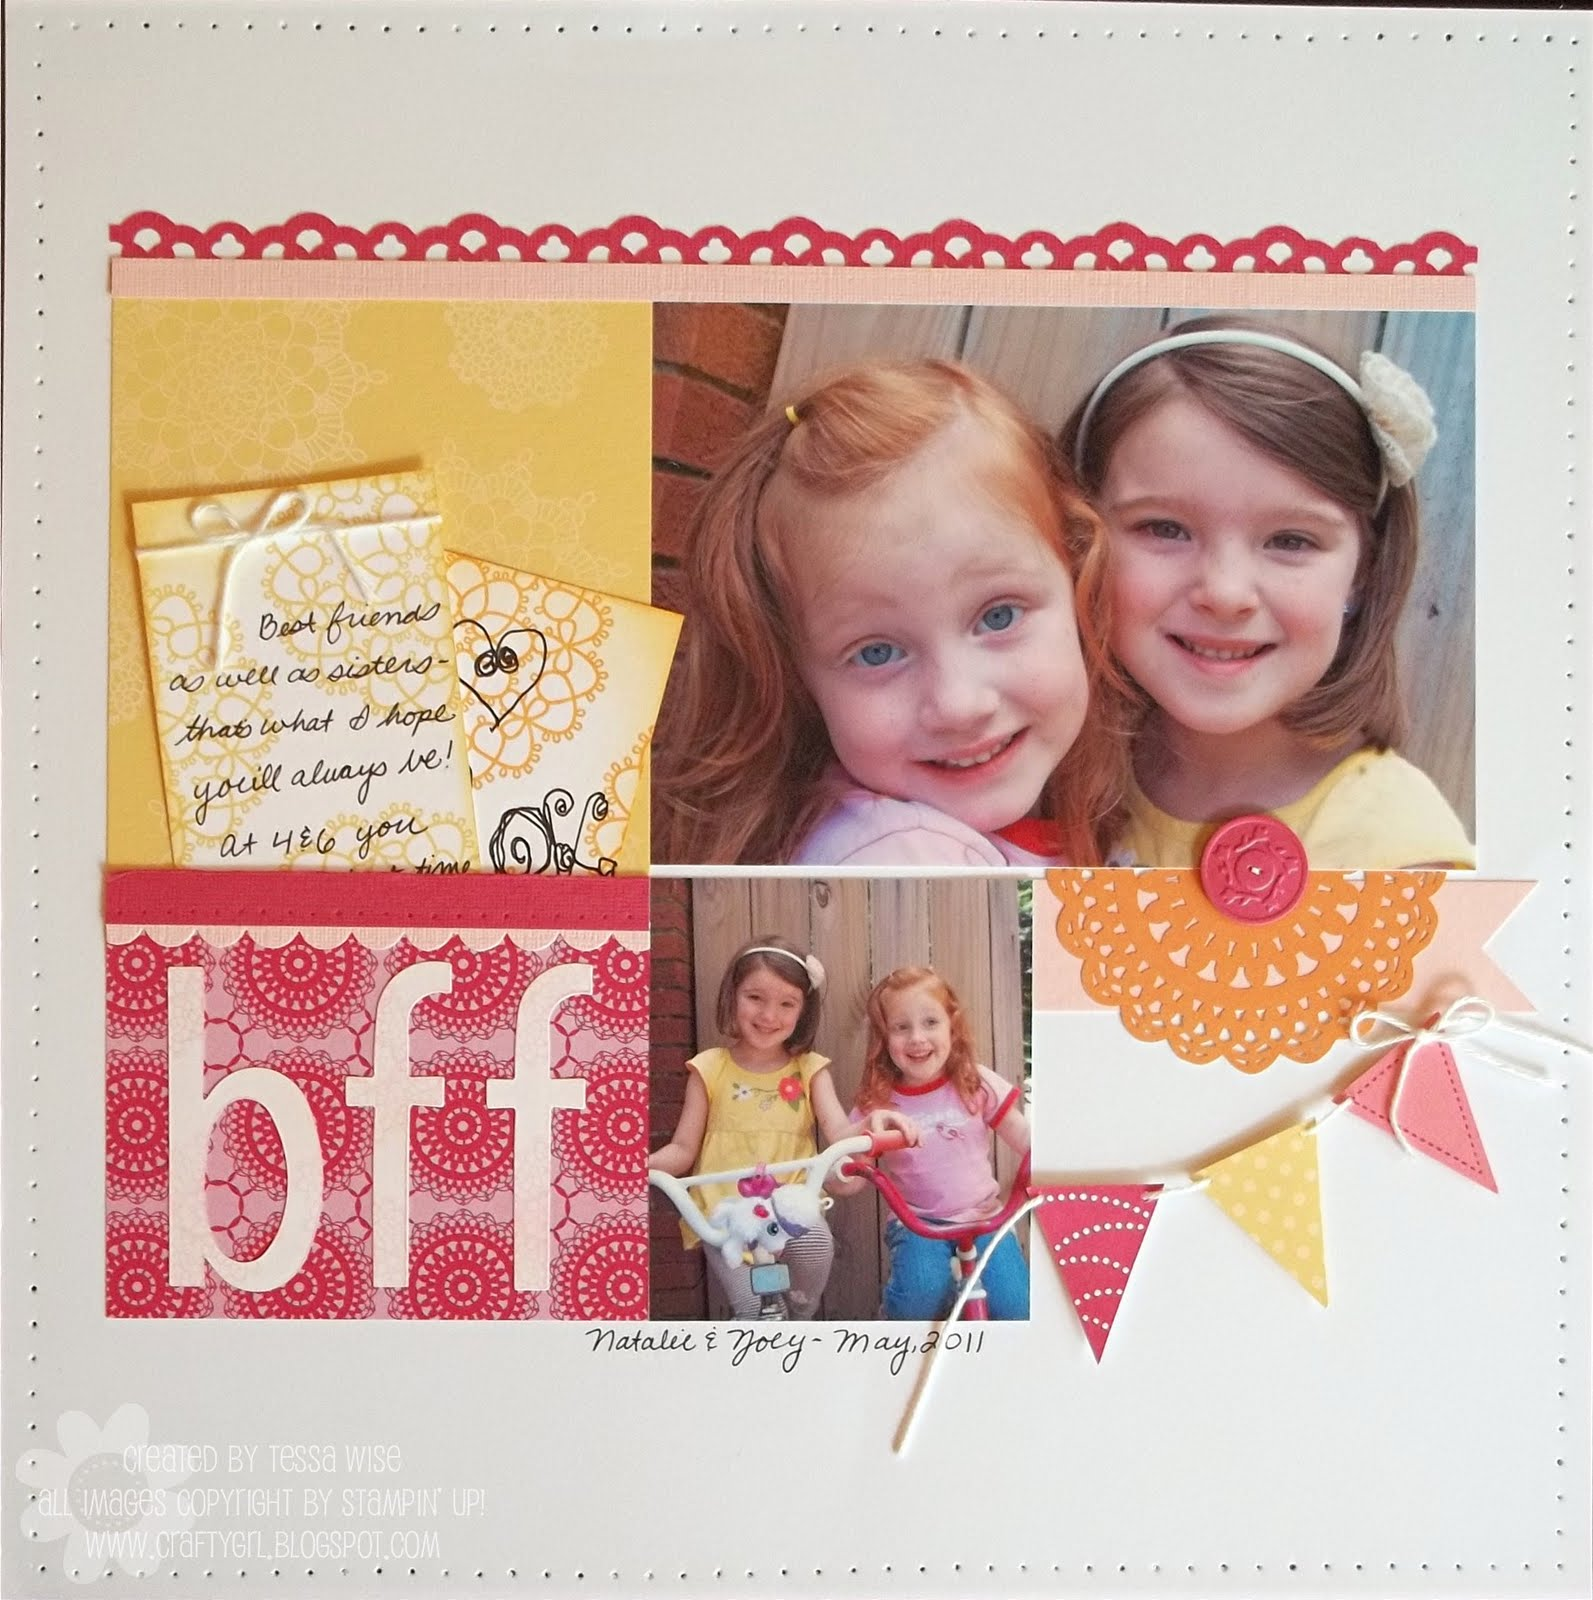 Scrapbook ideas for bff - I Was Thinking About Me And My Sister When I Made This Scrapbook Page Featuring My Little Girls I Hope They Have The Same Type Of Friendship We Have When